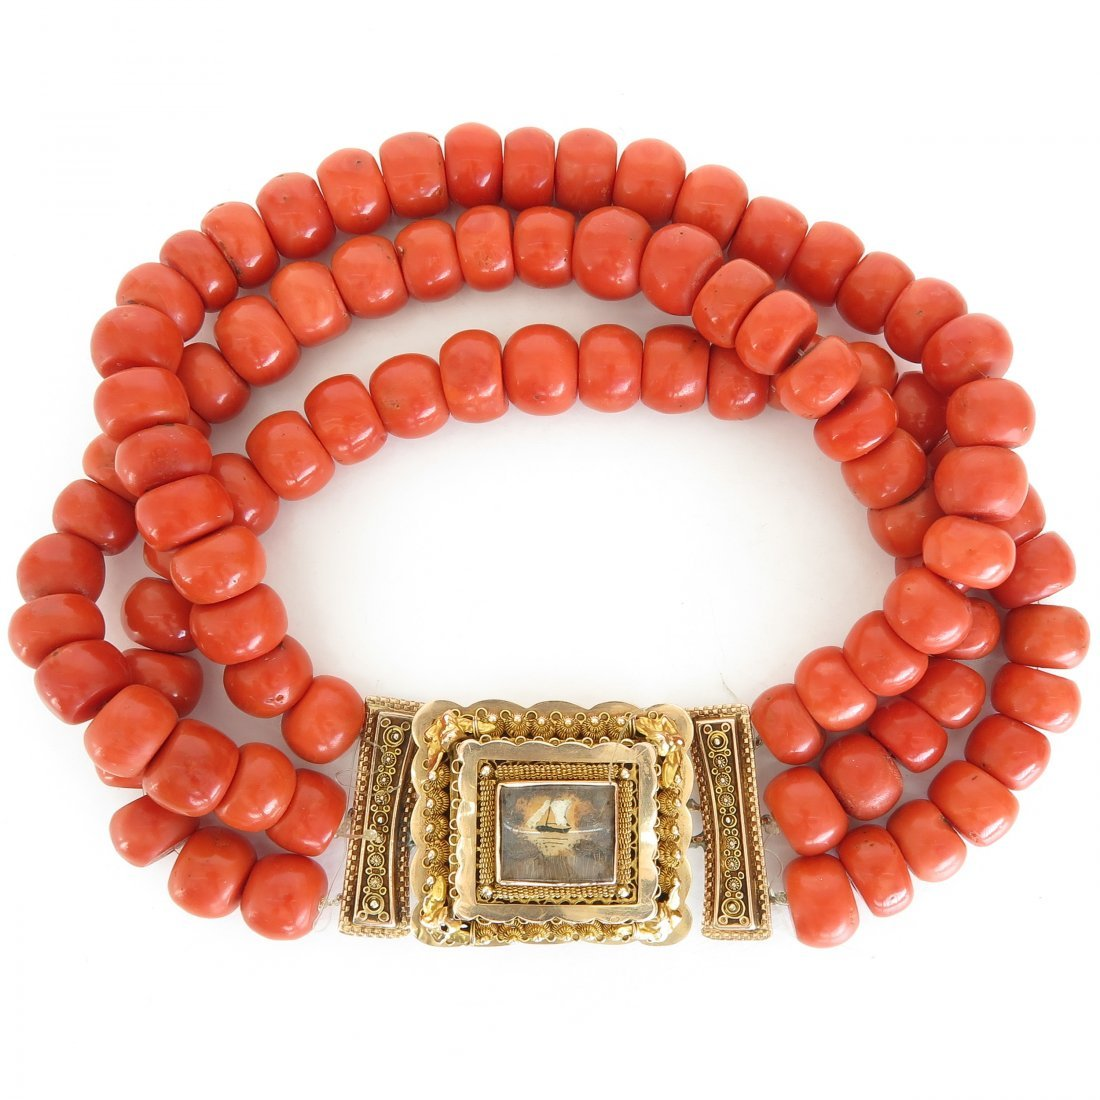 A Fine 19th Century Red Coral Necklace on 14KG Clasp